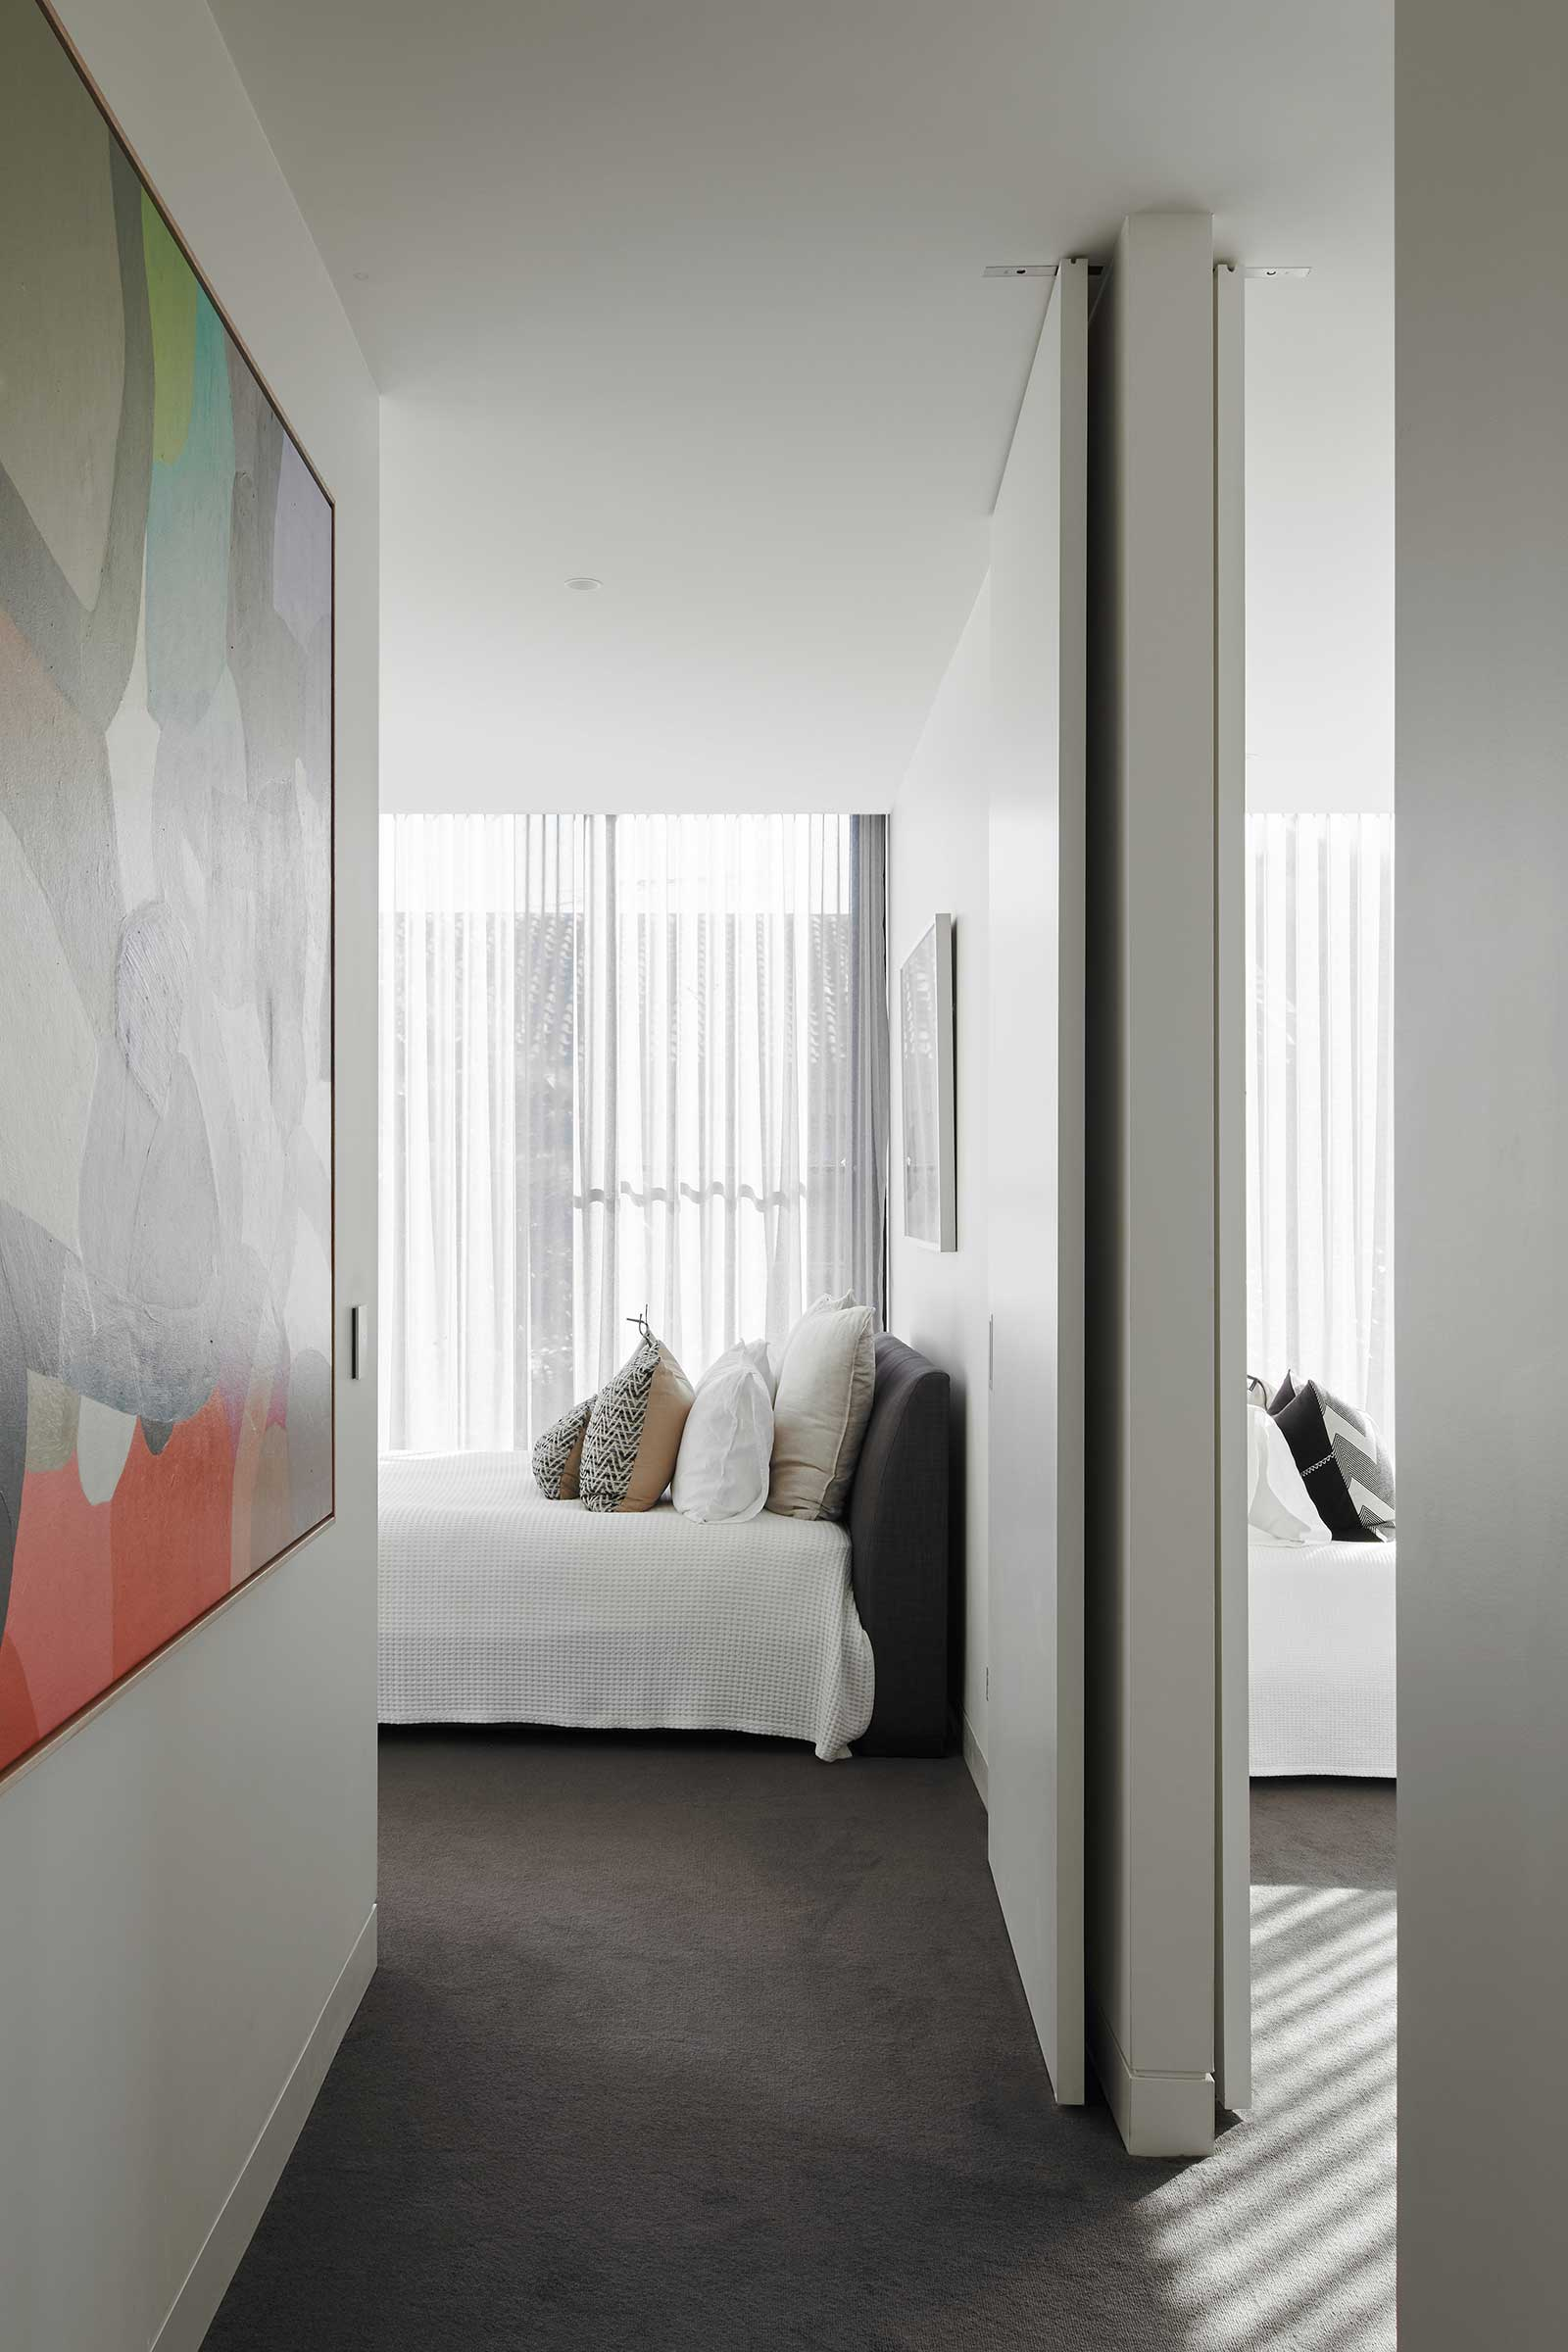 20_taouk_architects_bramley_court_veeral_6201-1_edit_p.jpg